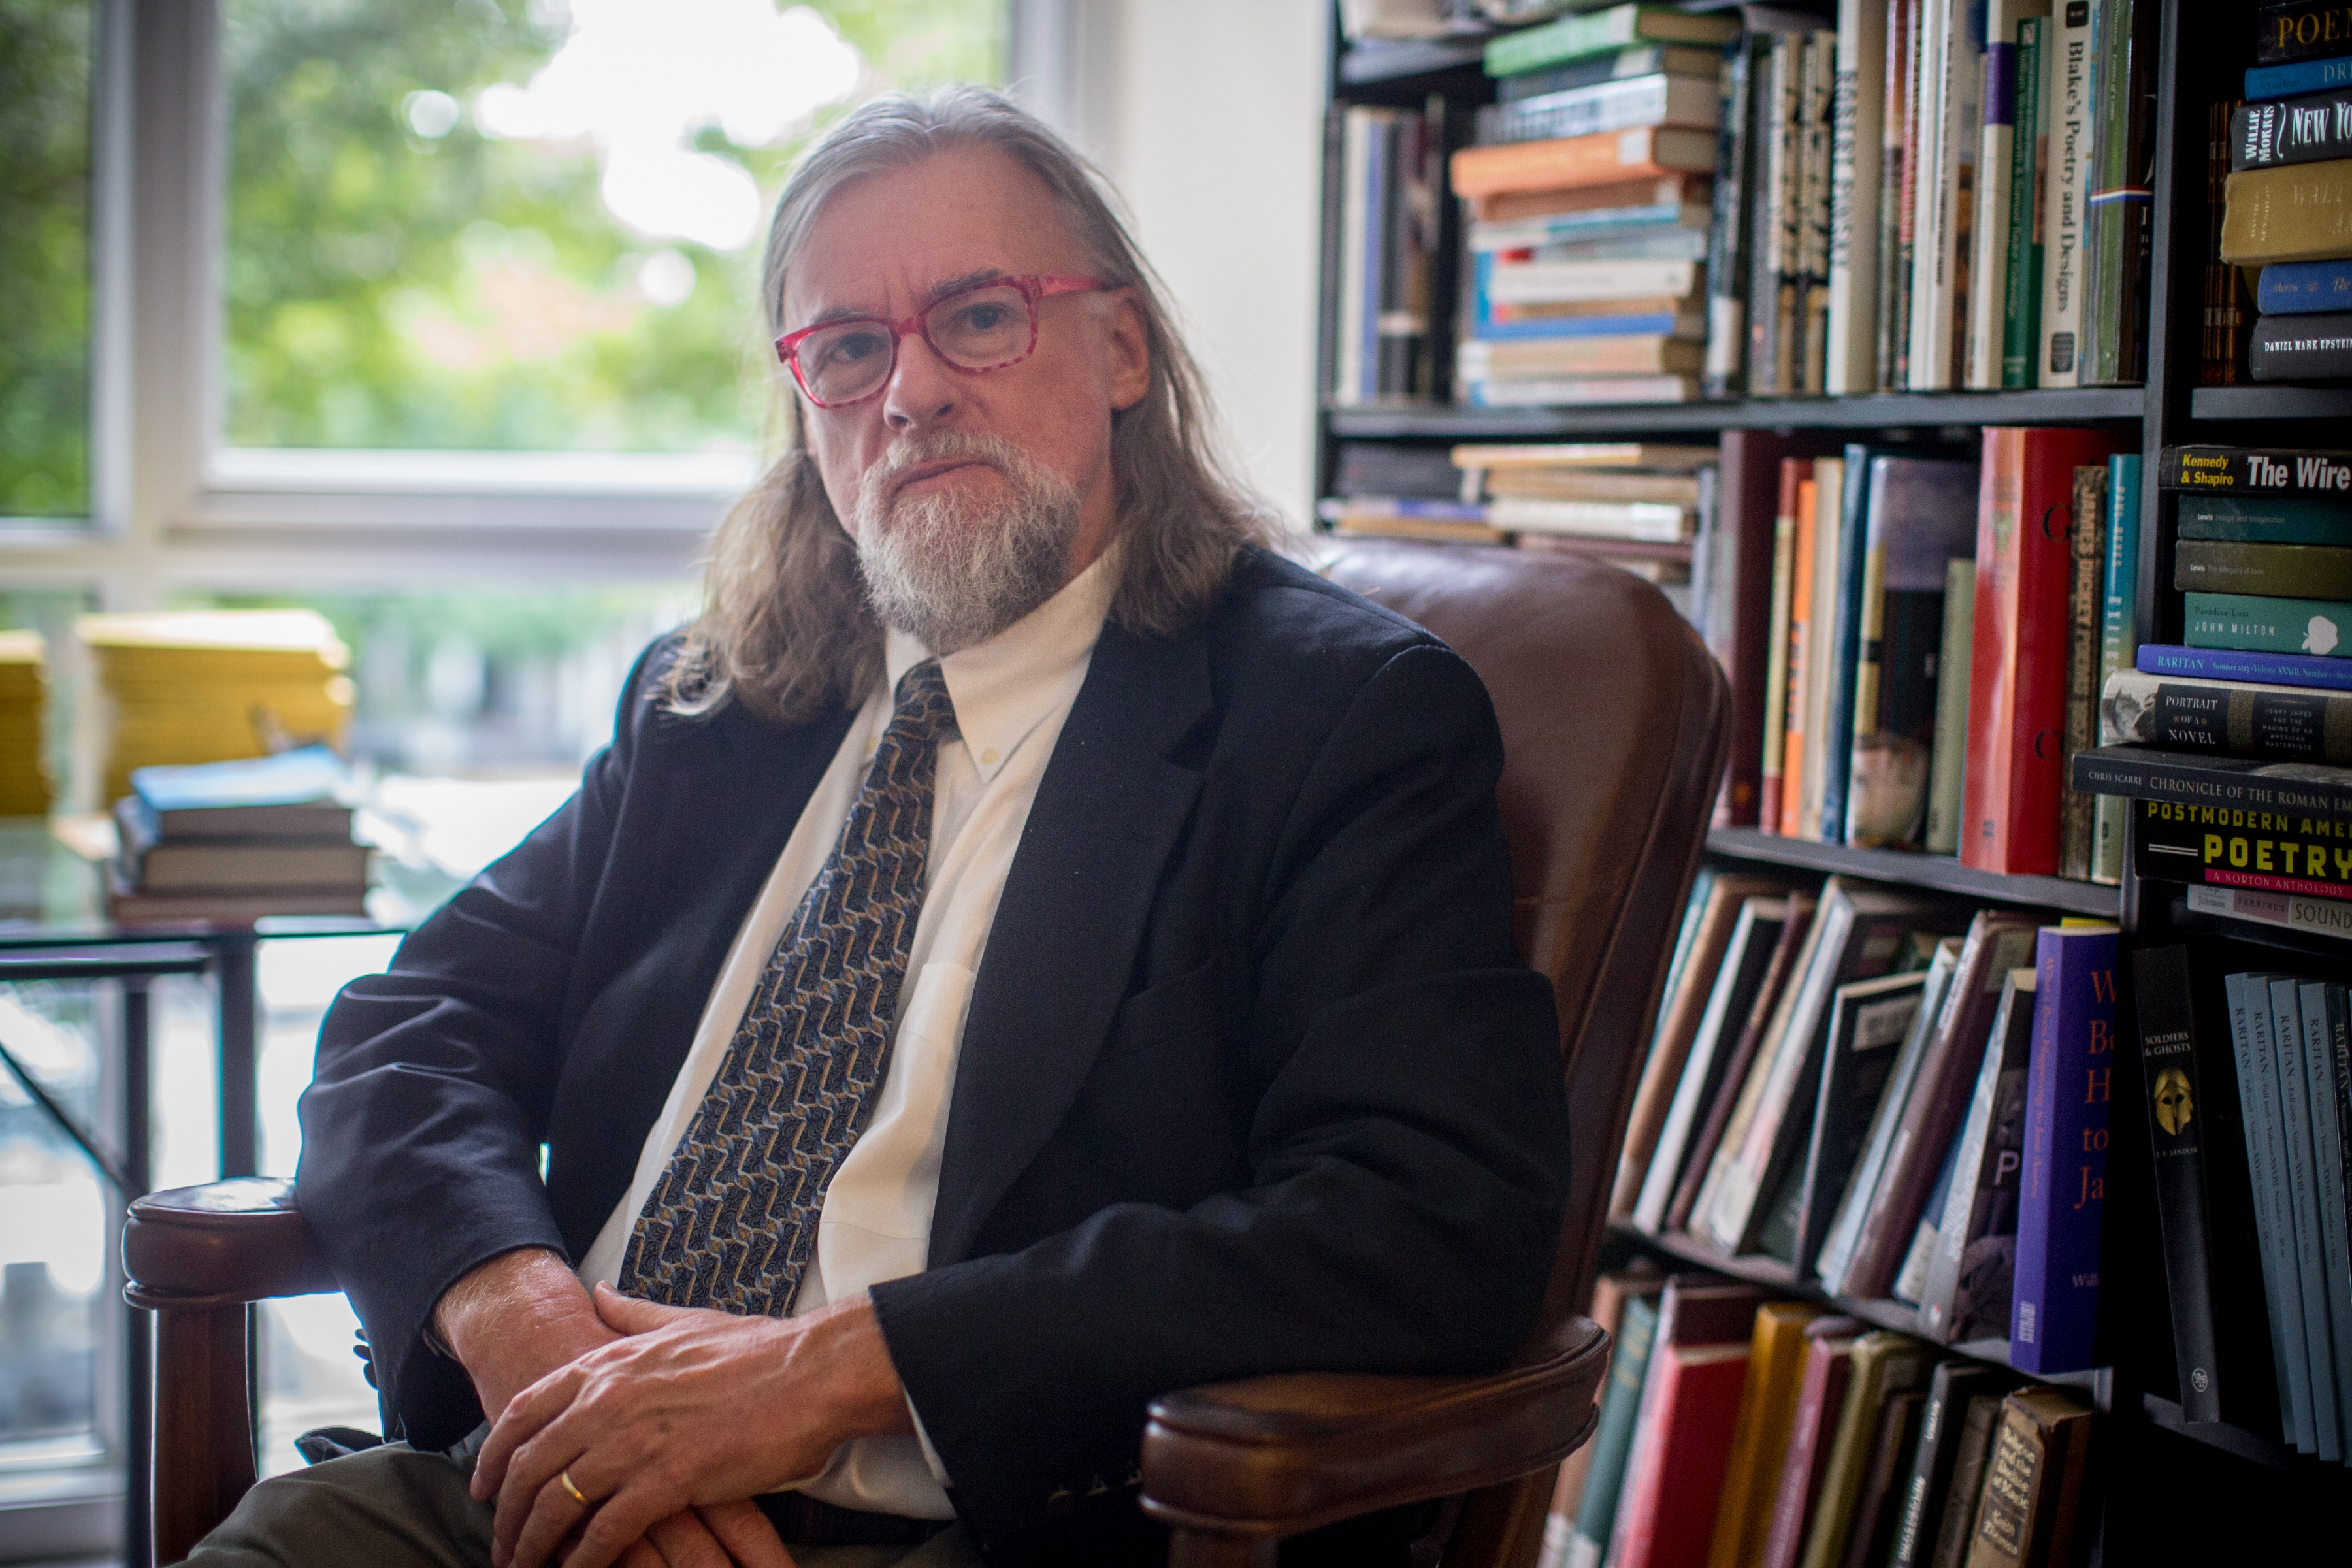 """Mark Edmundson has published nonfiction books from """"Why Write?"""" to """"Nightmare on Main Street."""" (Photo by Sanjay Suchak, University Communications)"""